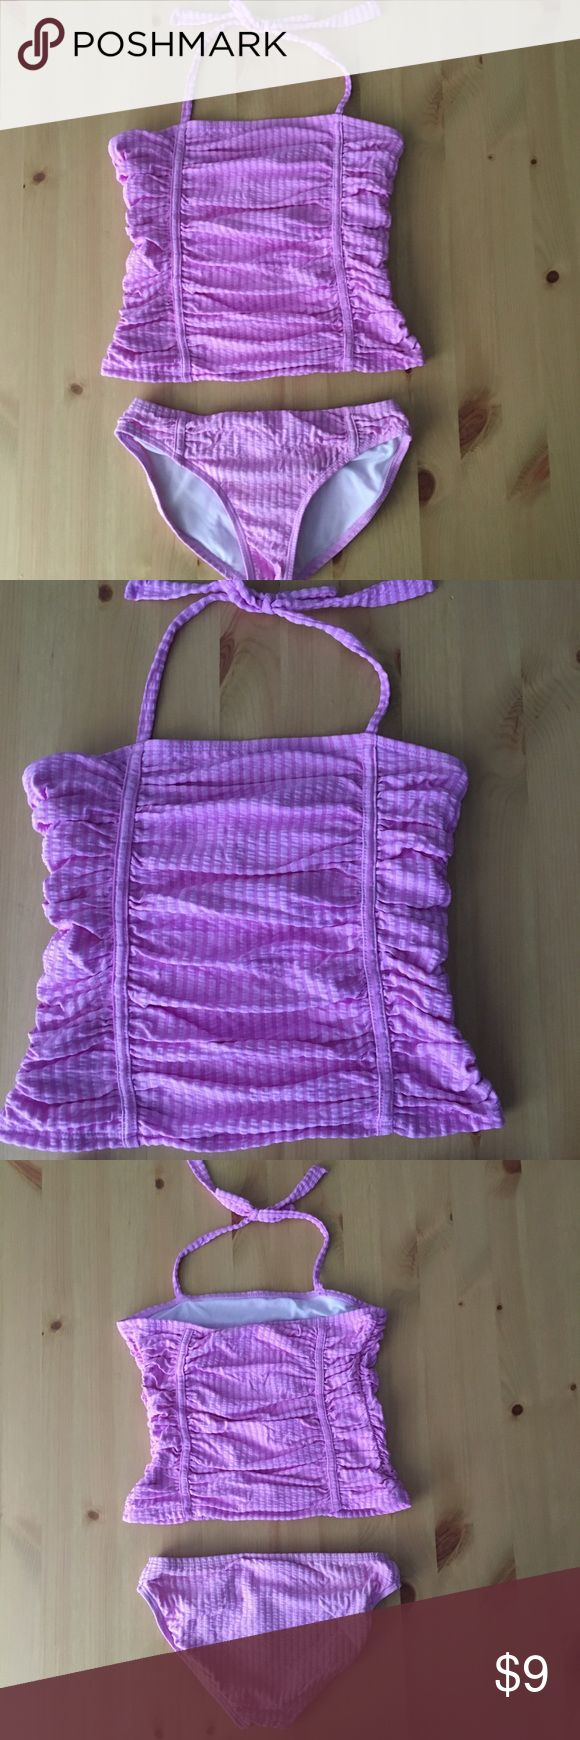 Jessica Simpson Light Purple Two Piece In excellent condition! Tankini with ruching and ties around the neck. Size 10. I'm a speedy shipper and we have a smoke free home! Measurements upon request. I'm always open to reasonable offers. Jessica Simpson Swim Bikinis